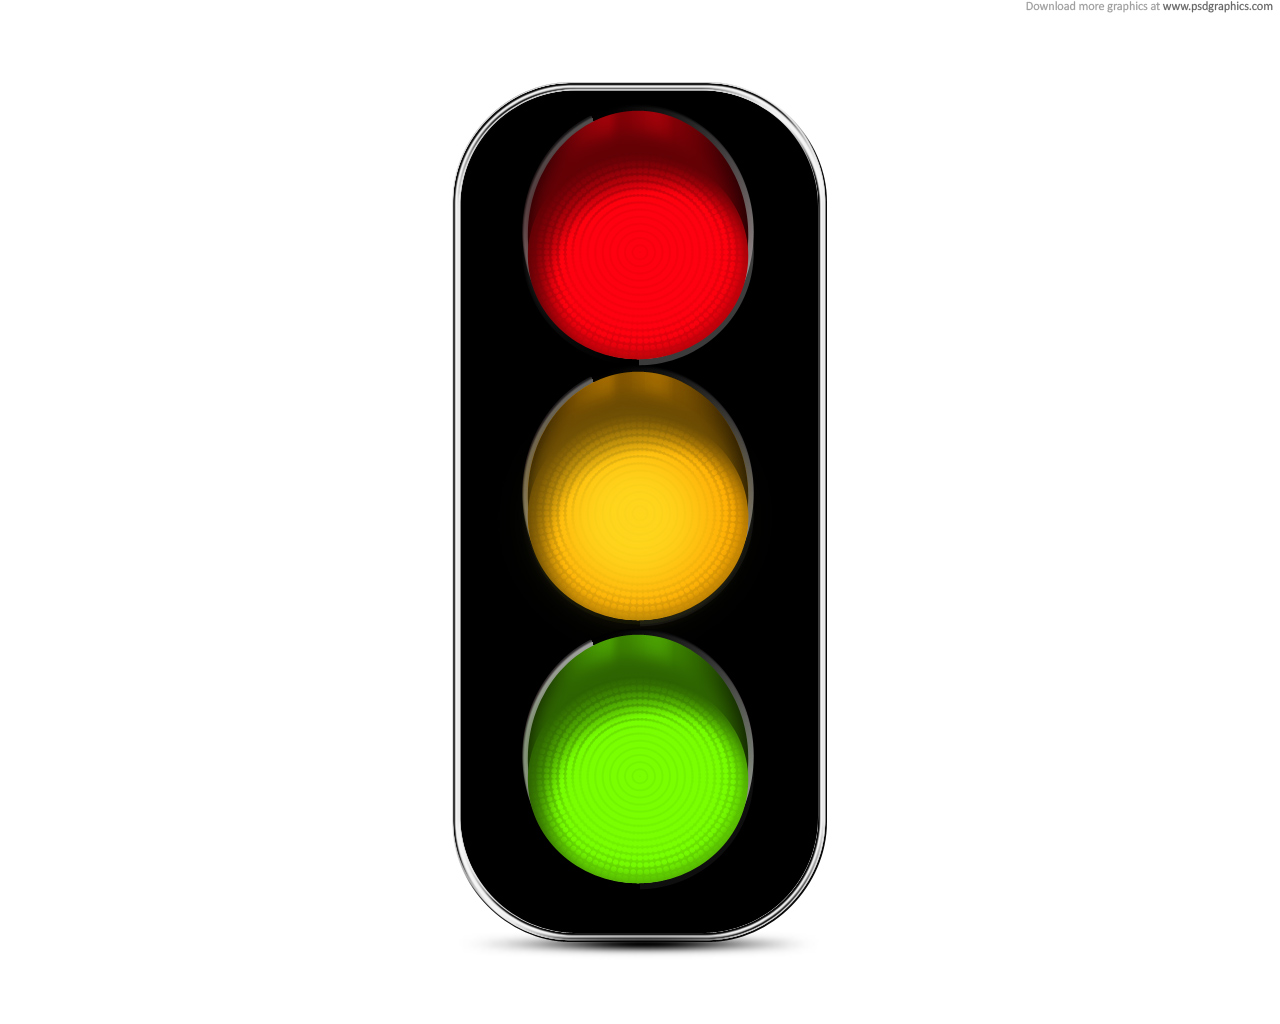 Traffic light icon clipart